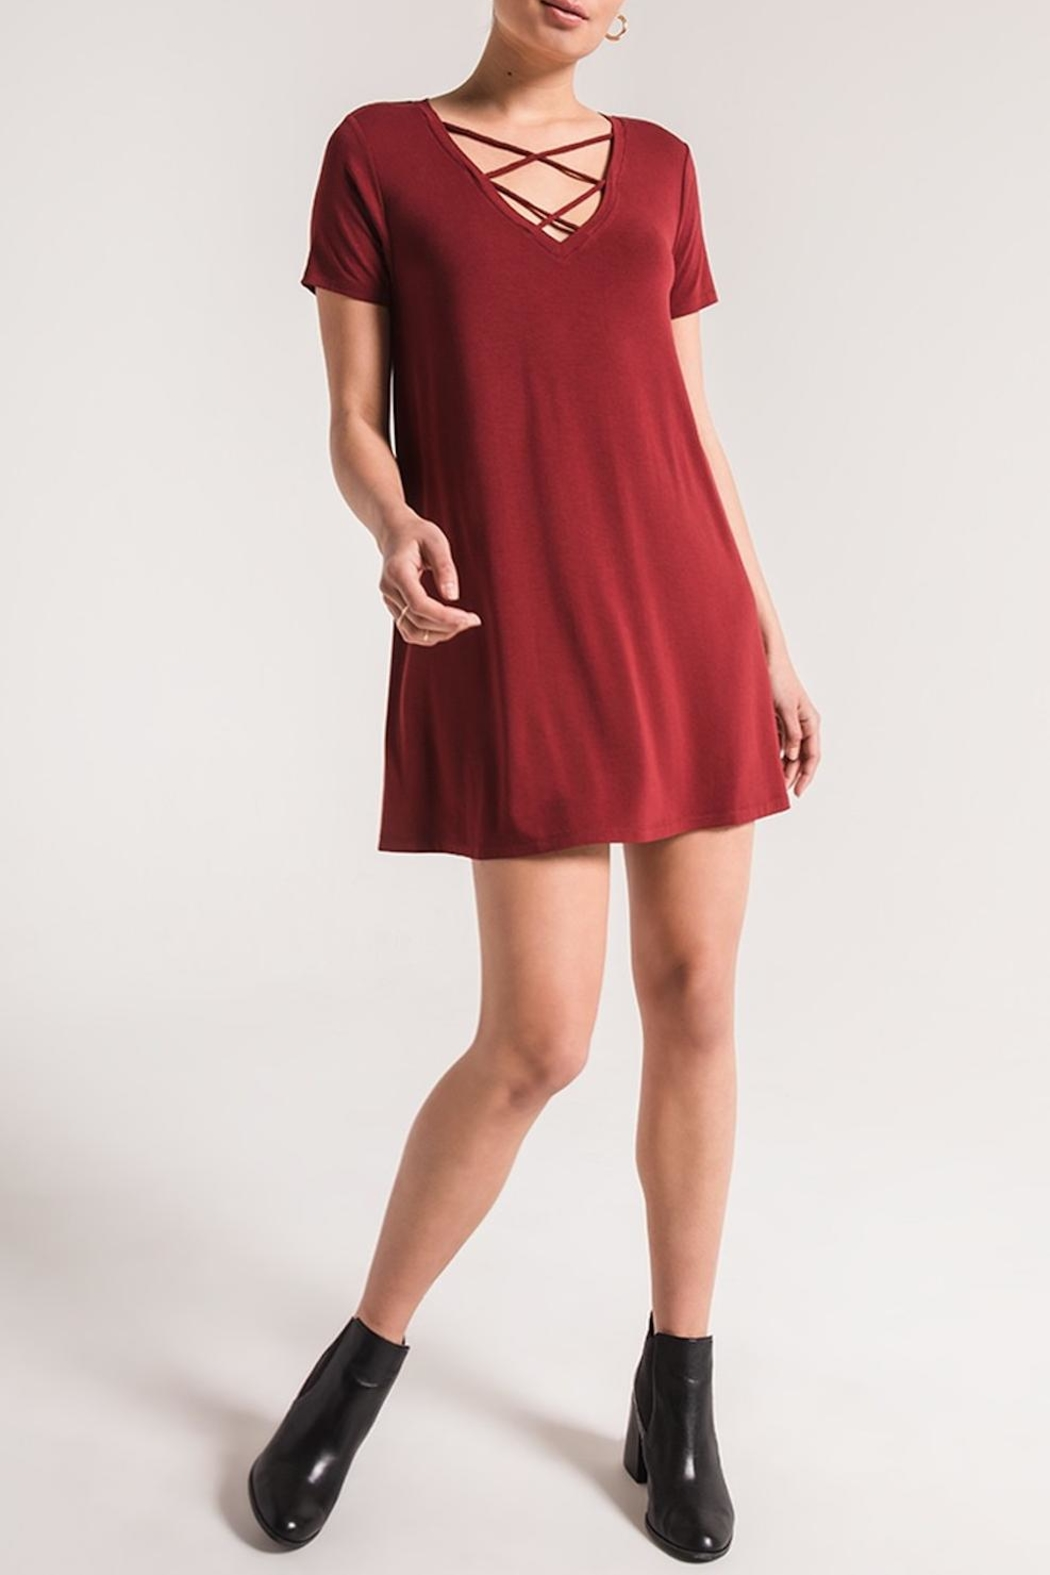 z supply Criss Cross Dress - Front Cropped Image